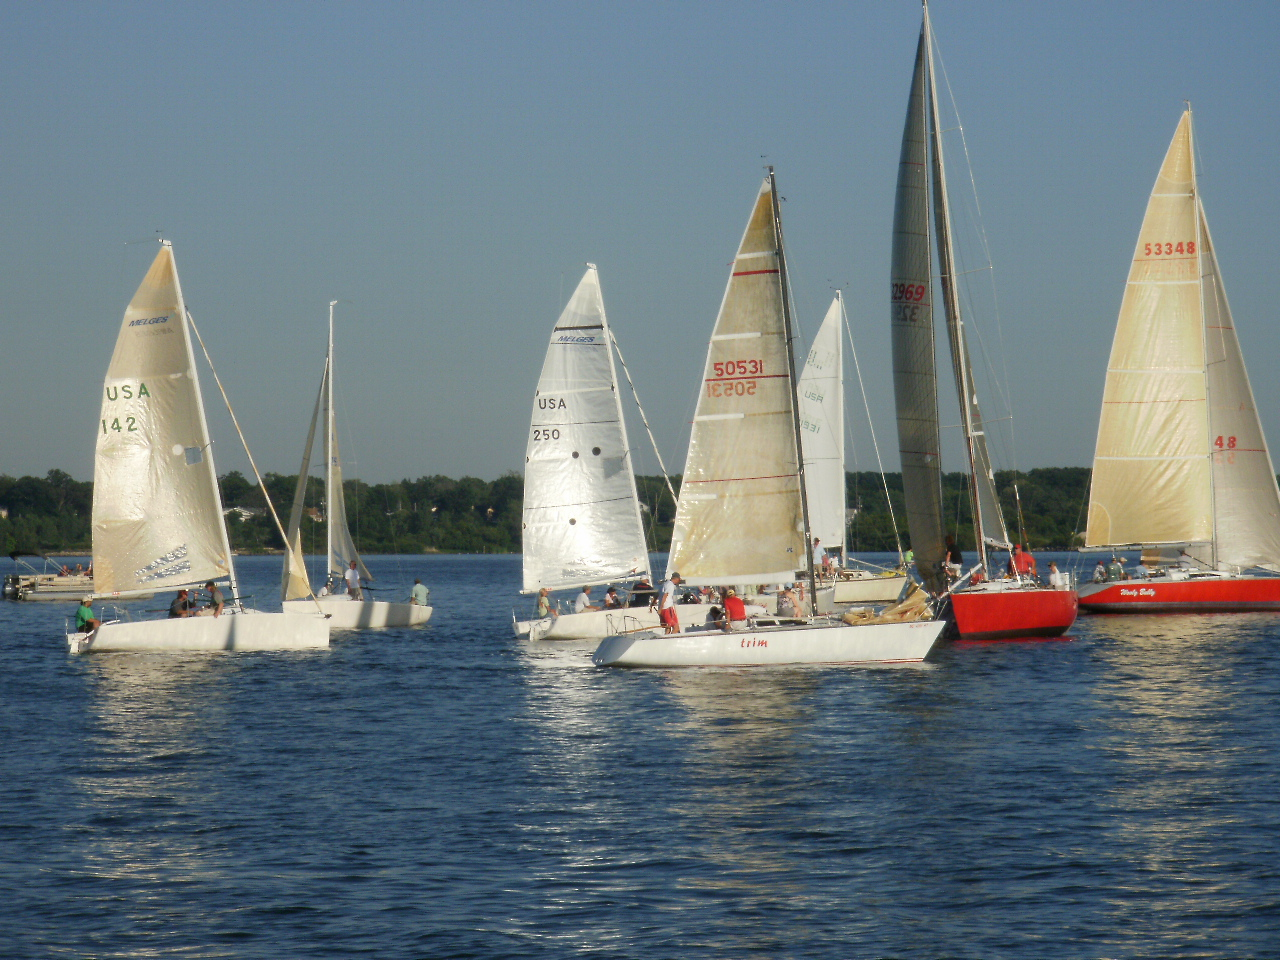 Sailboats on Muskegon Lake